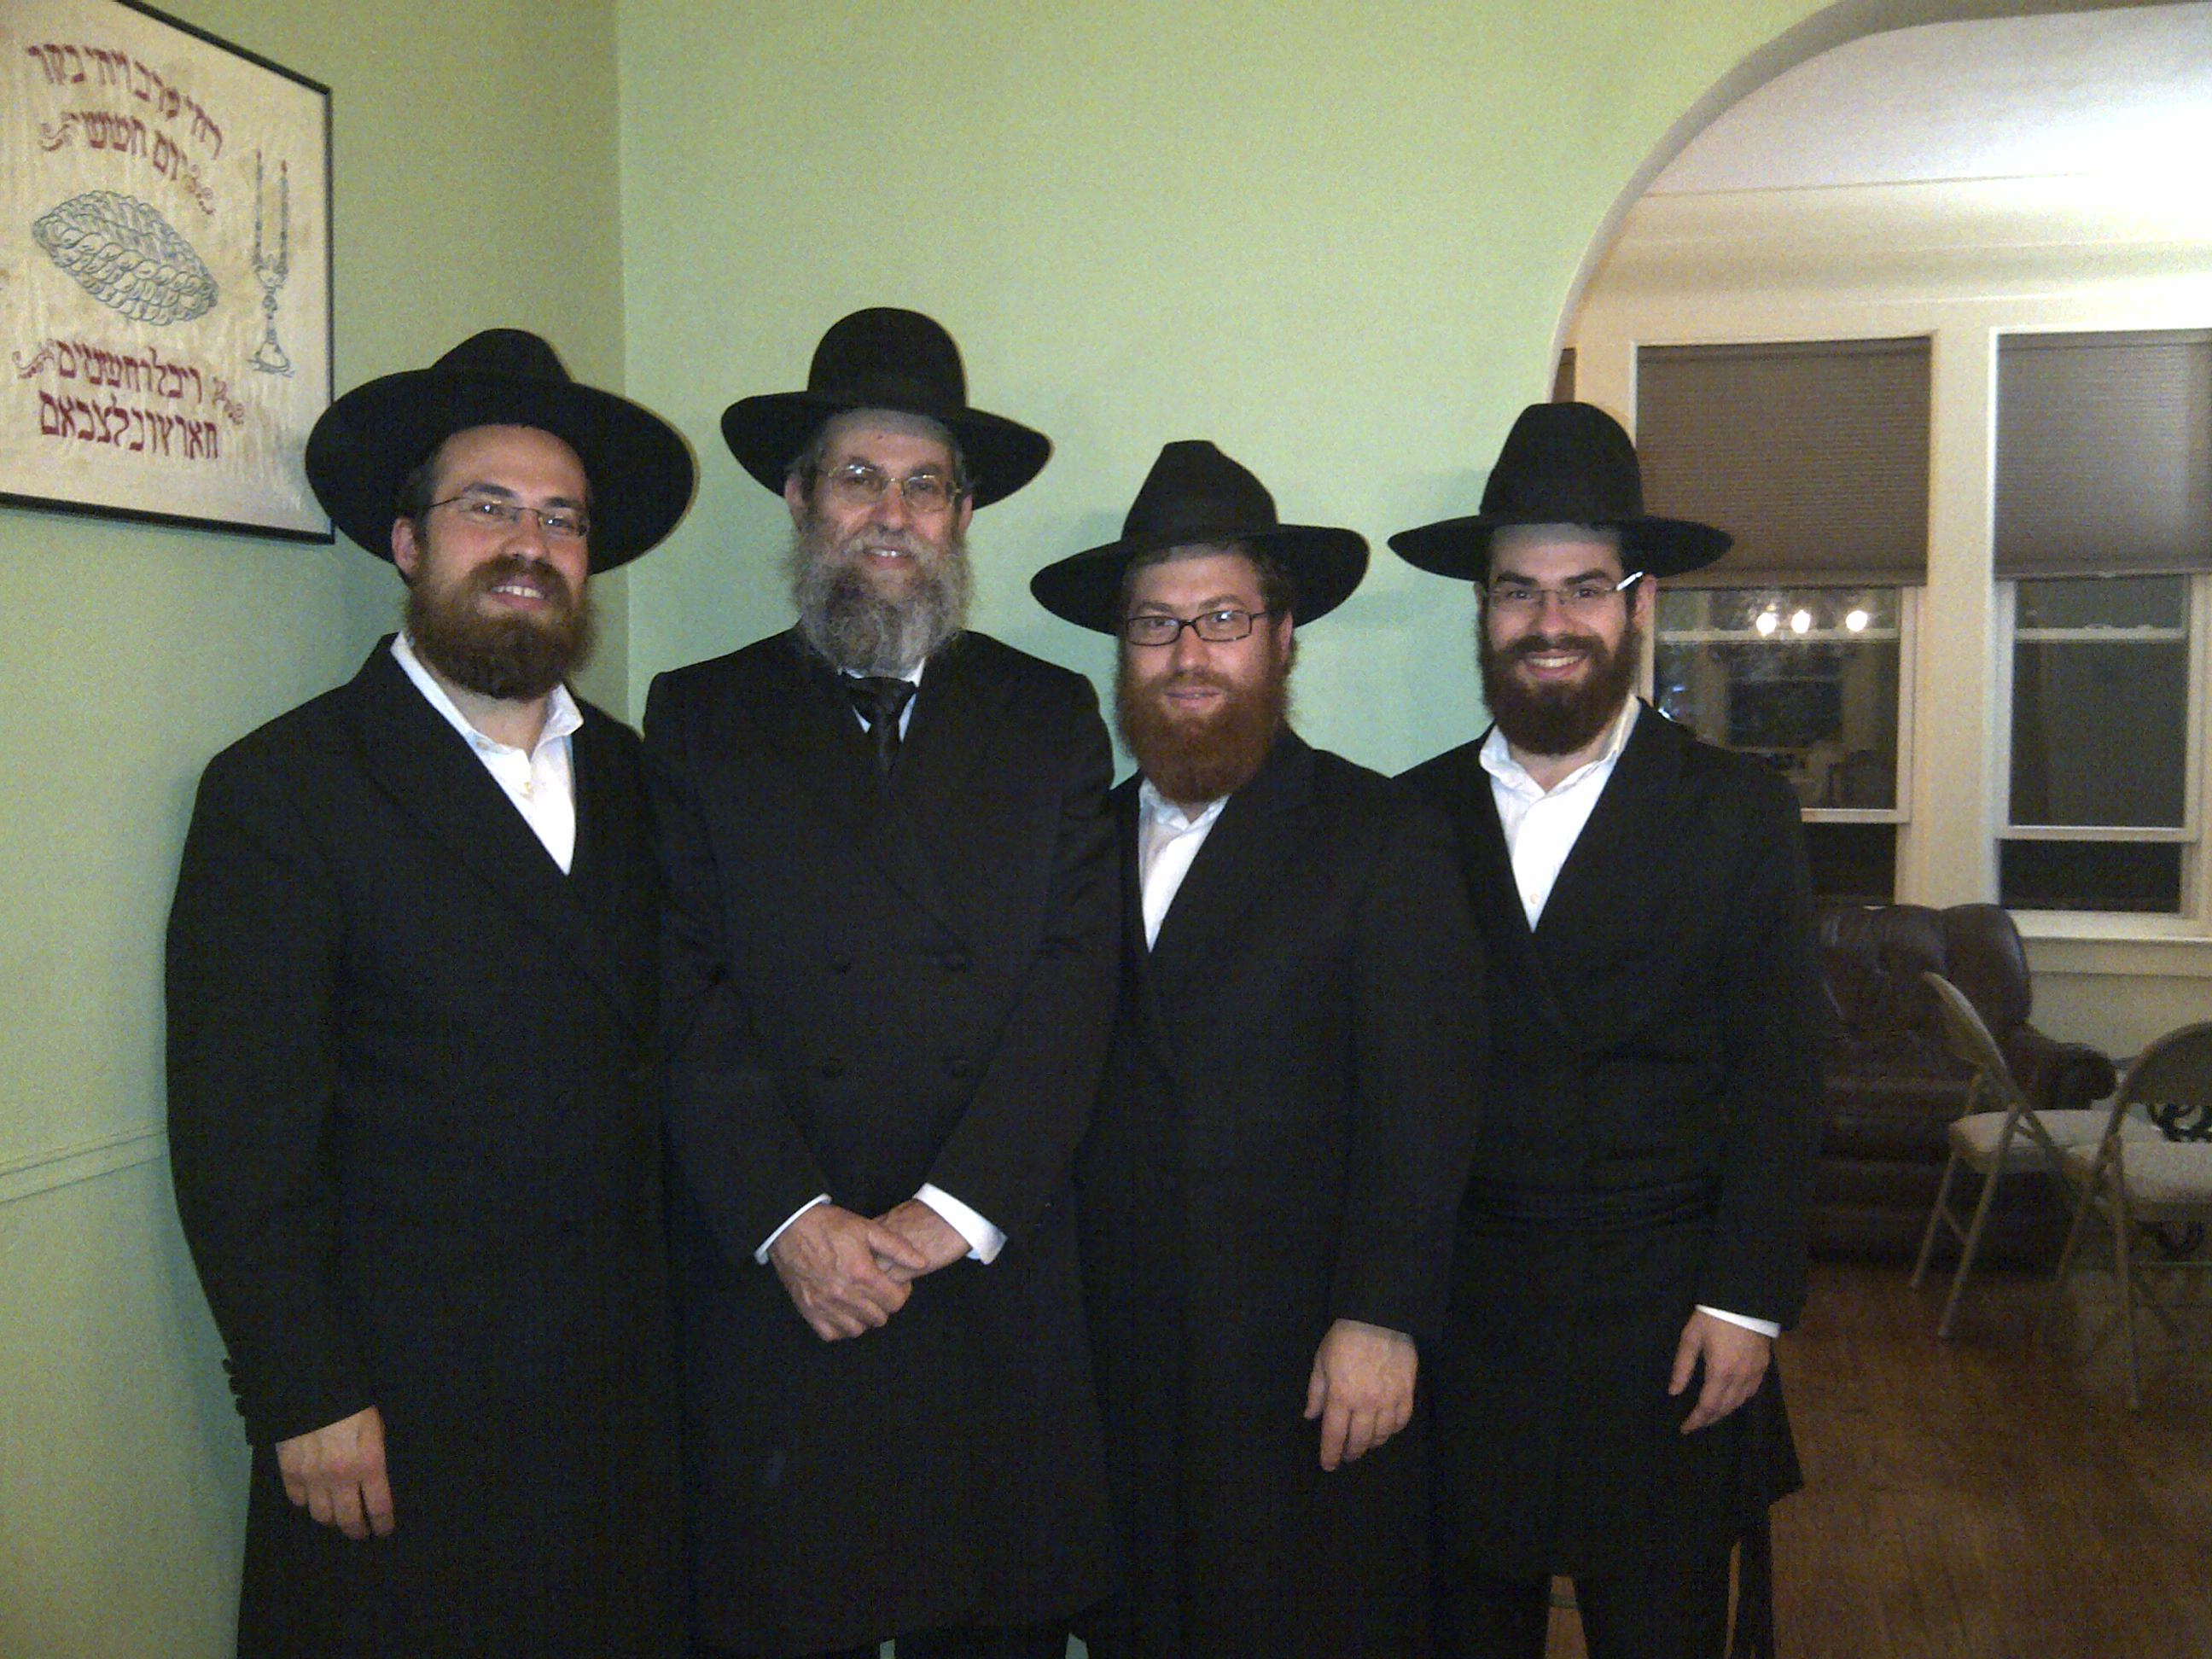 The four Galperin rabbis